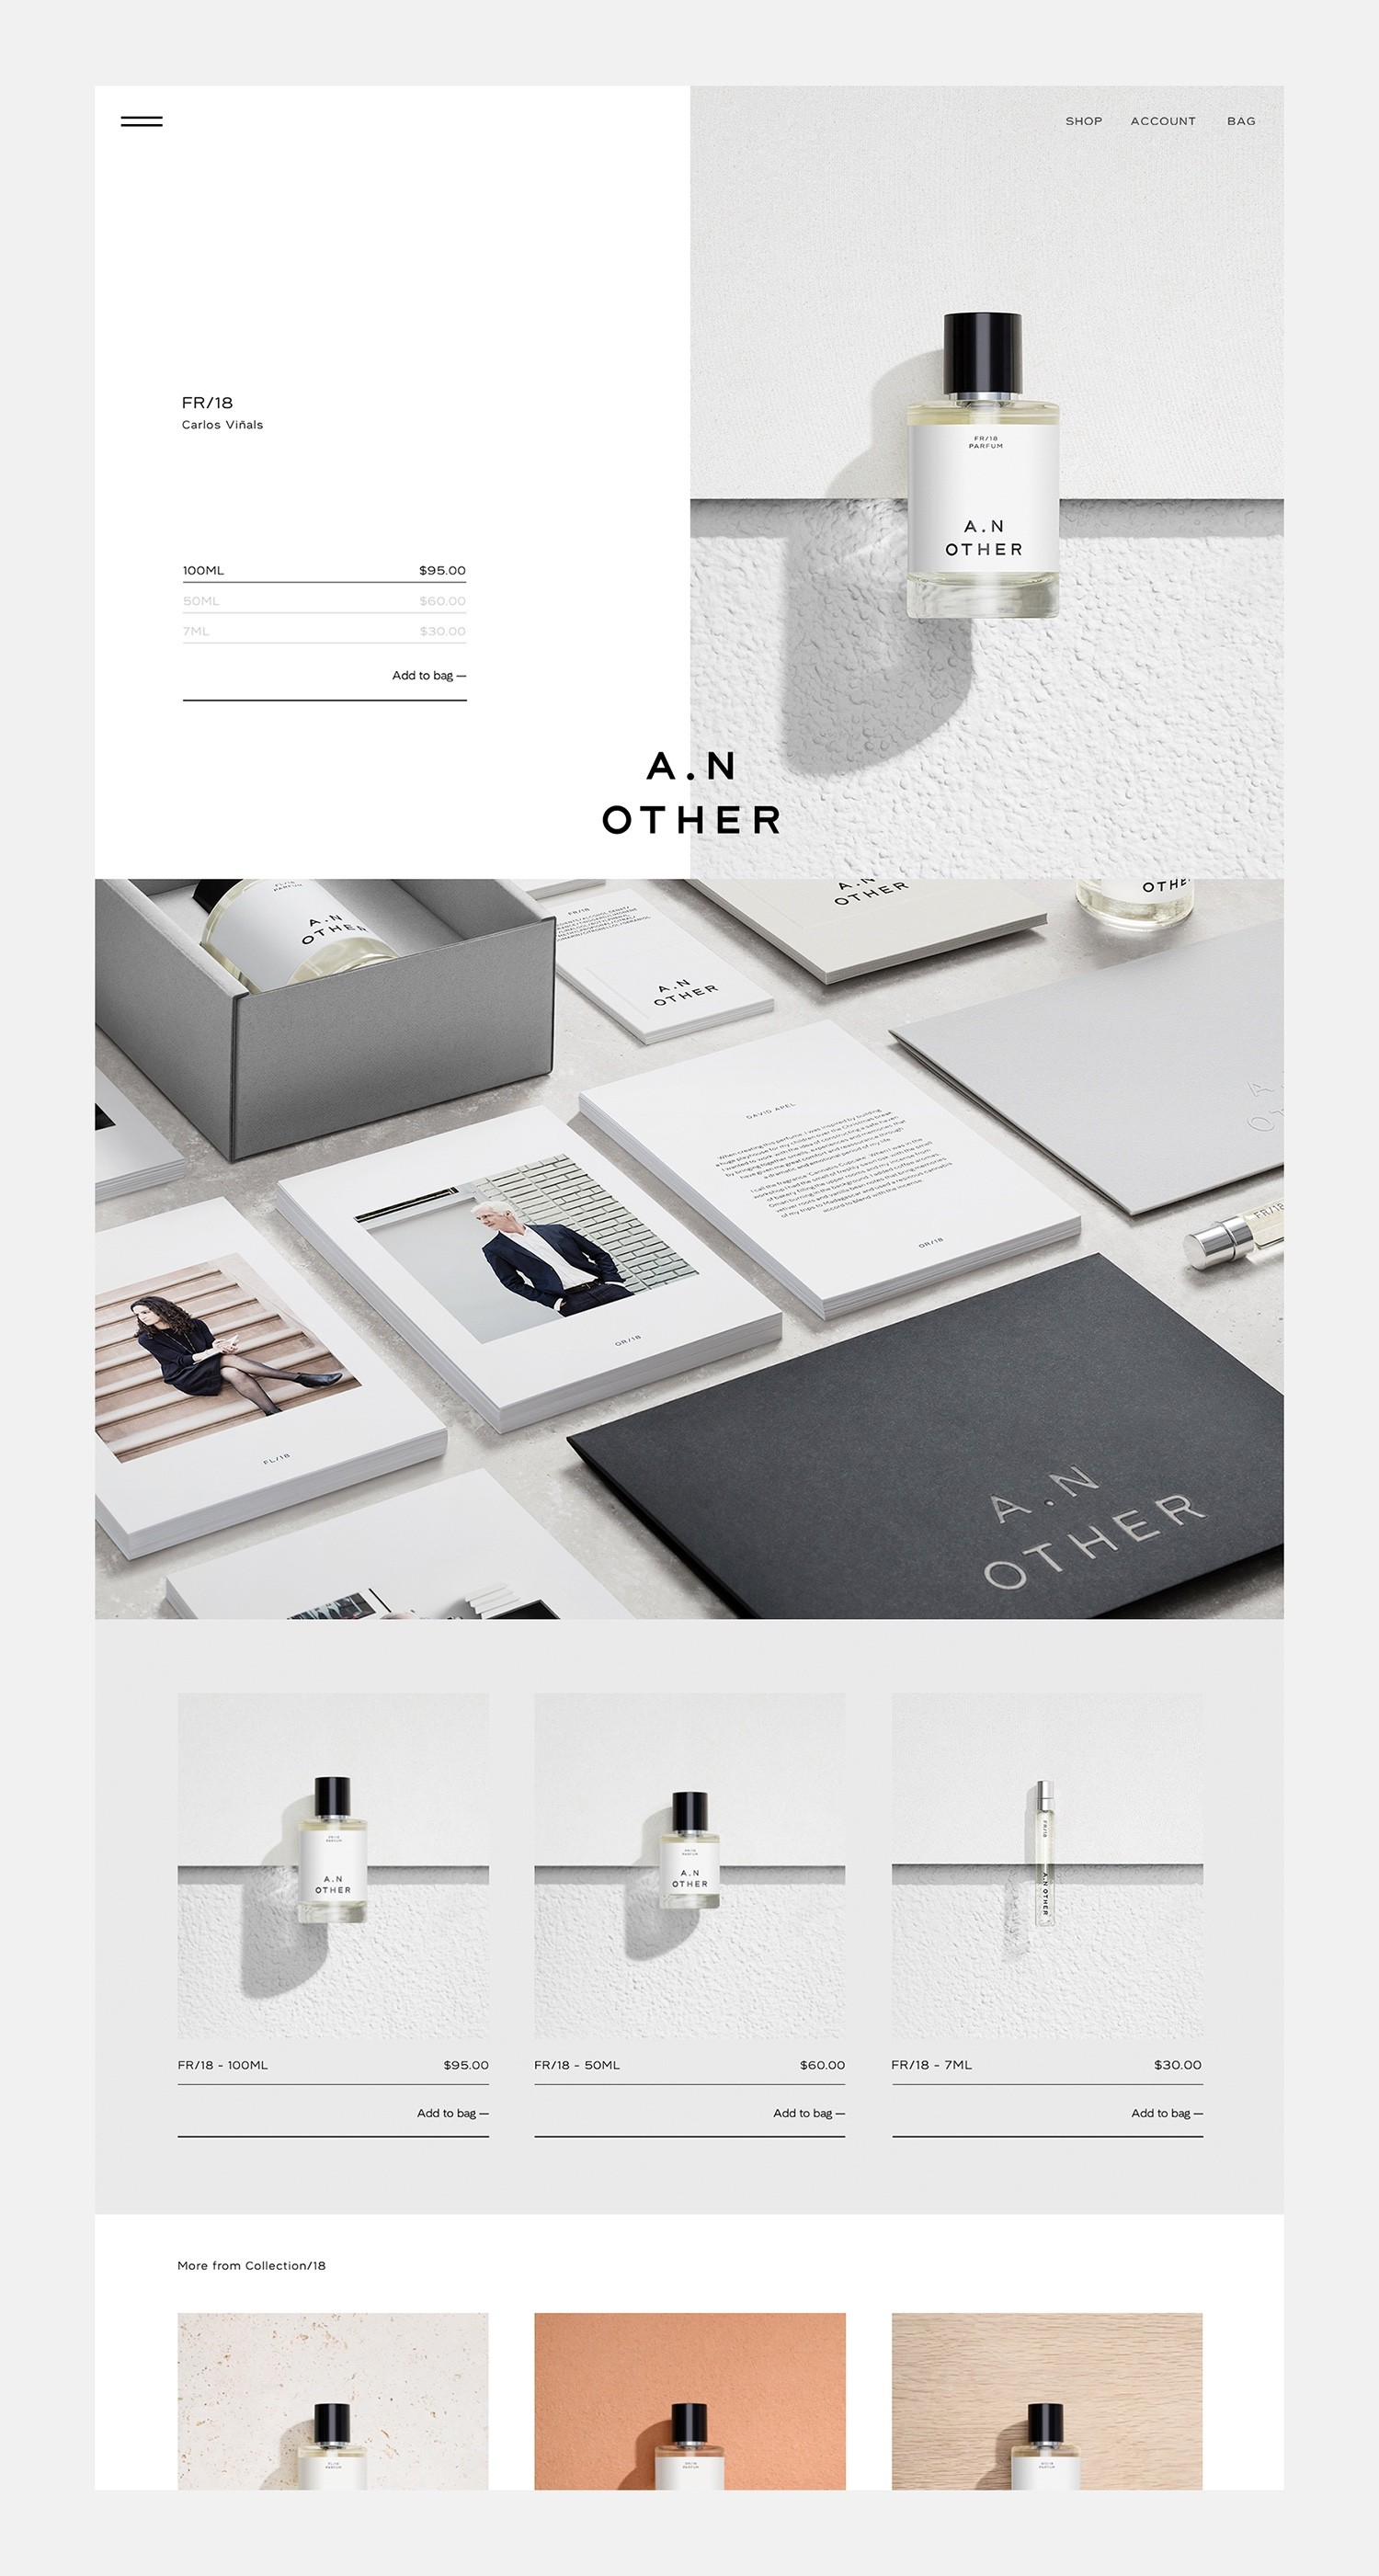 15-A-N-Other-Fragrances-Branding-Website-Socio-Design-London-UK-BPO.jpg